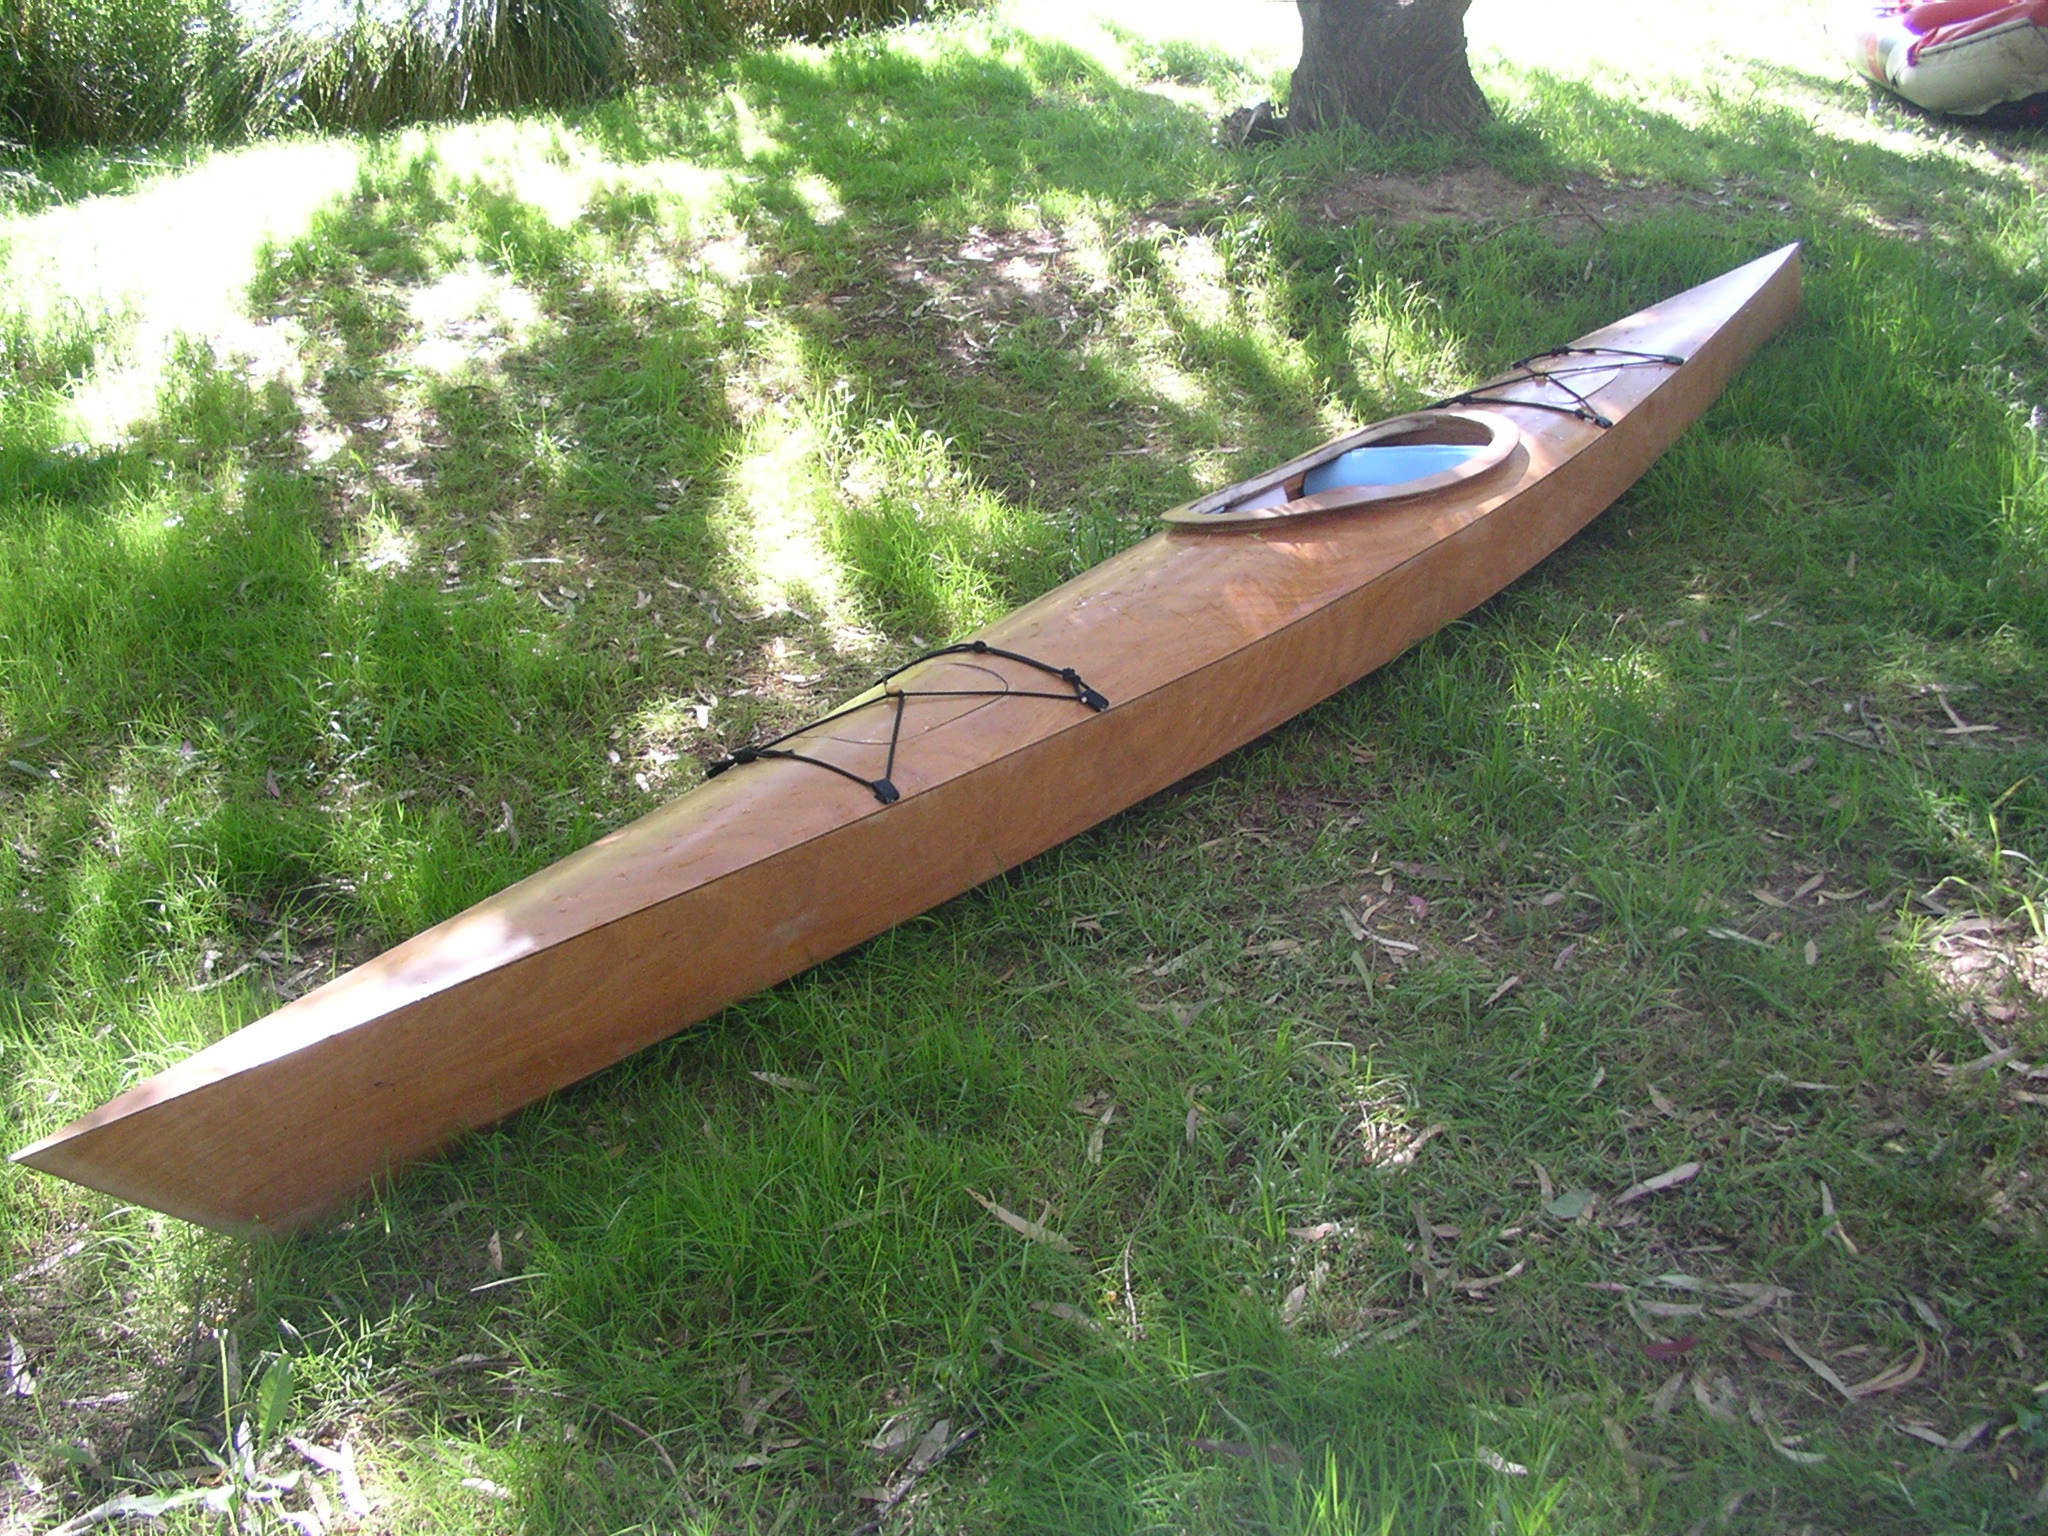 Sea Charts For Sale: Sea kayak - Wikipedia,Chart